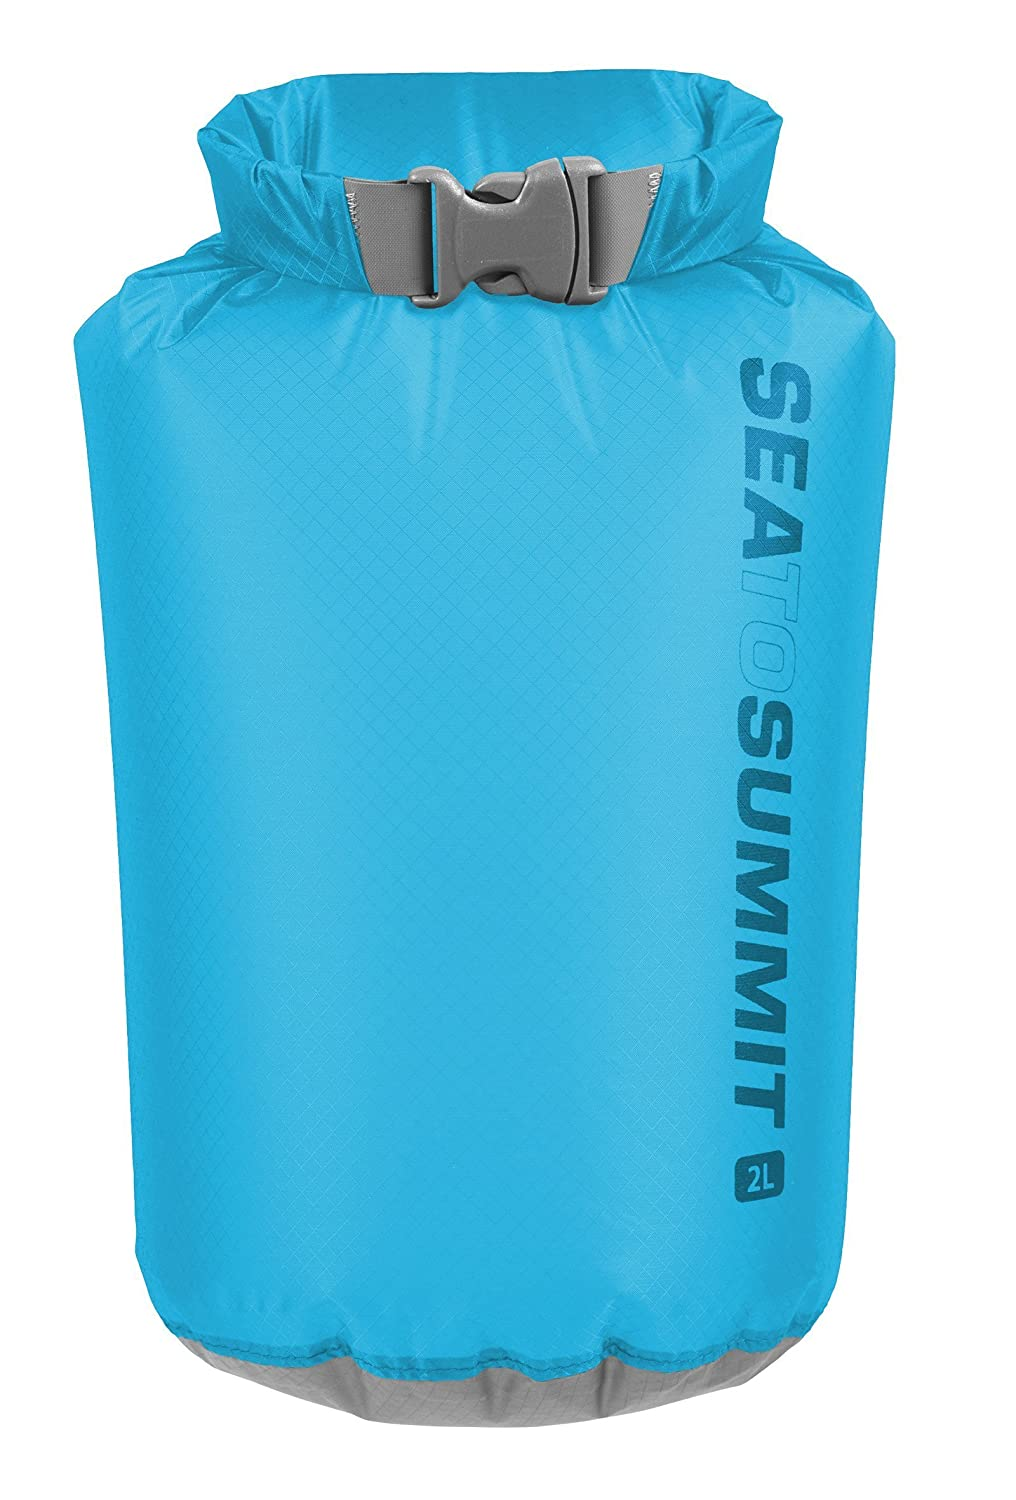 Sea to Summit Ultra Sil Drysack Waterproof Packsack 2L GLAUV|#GlasXpert 282